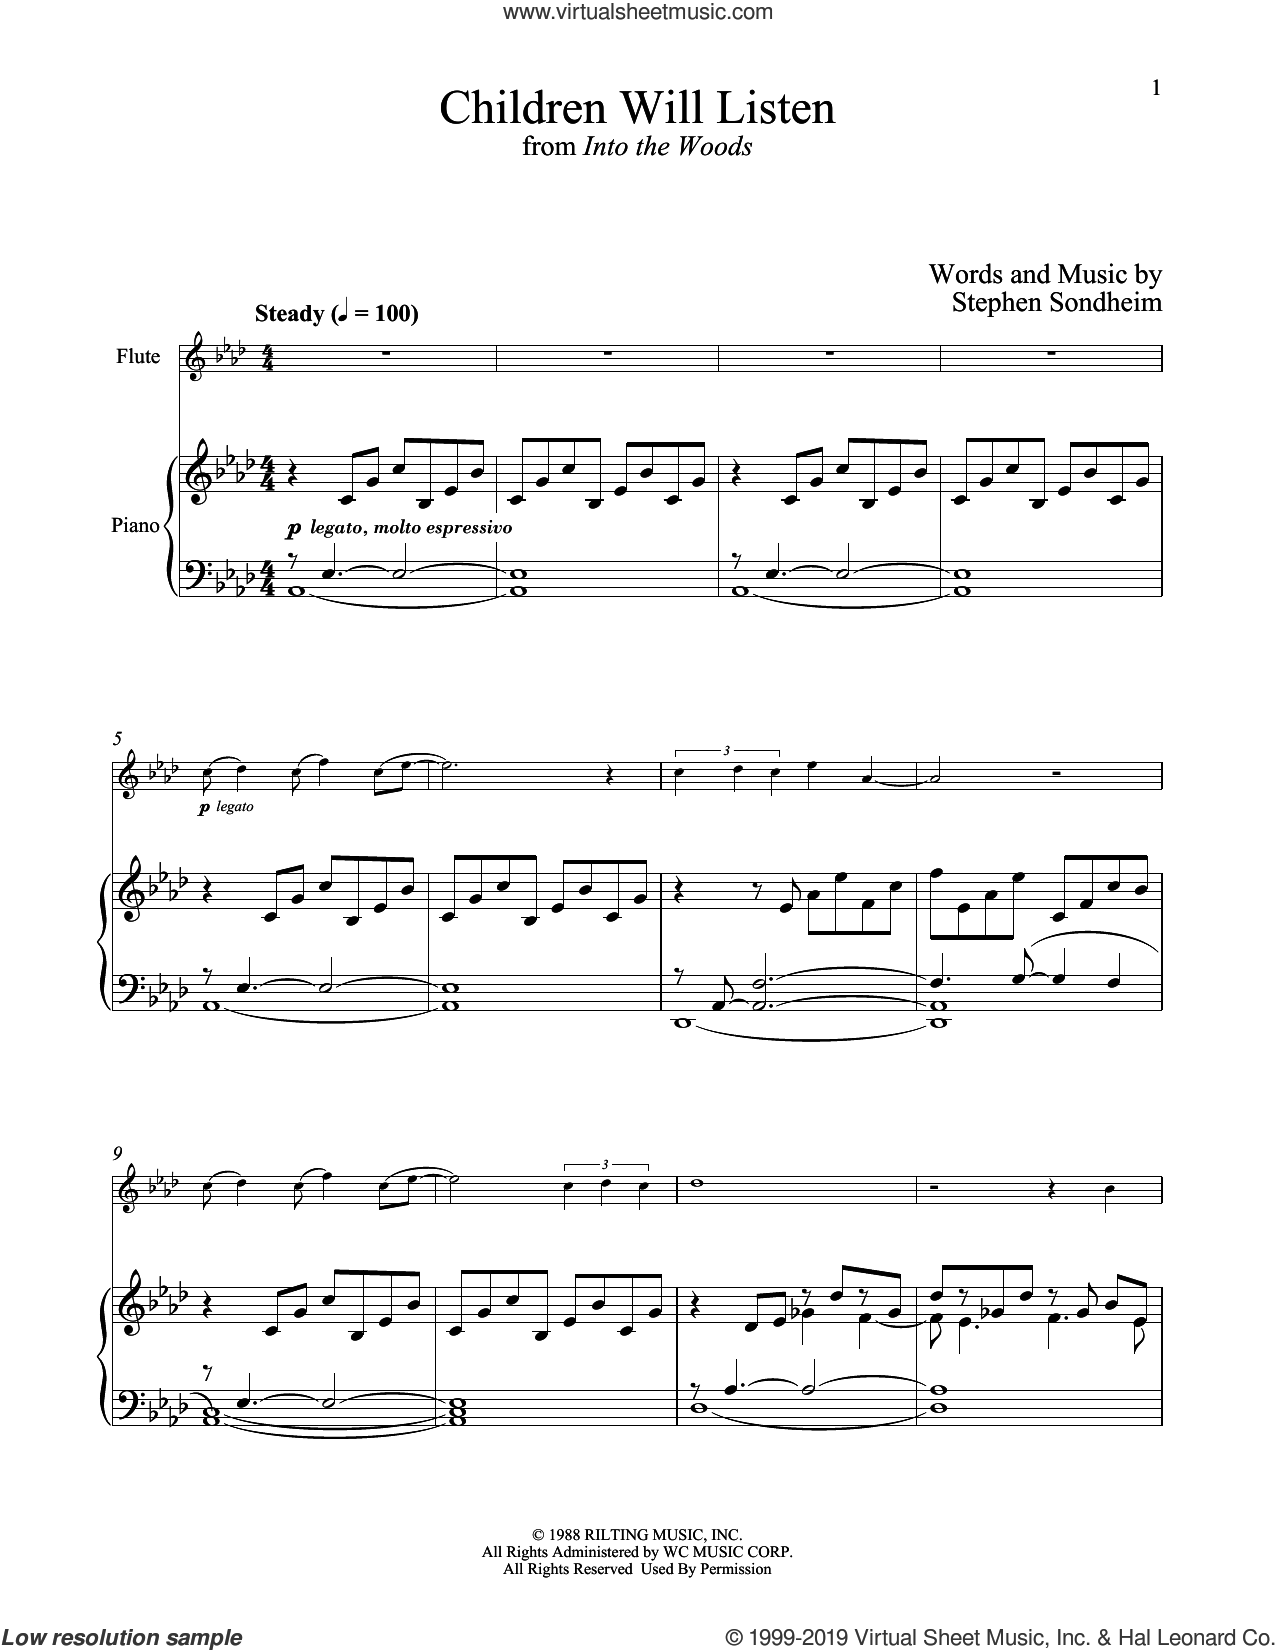 Children Will Listen (from Into The Woods) sheet music for flute and piano by Stephen Sondheim, intermediate skill level